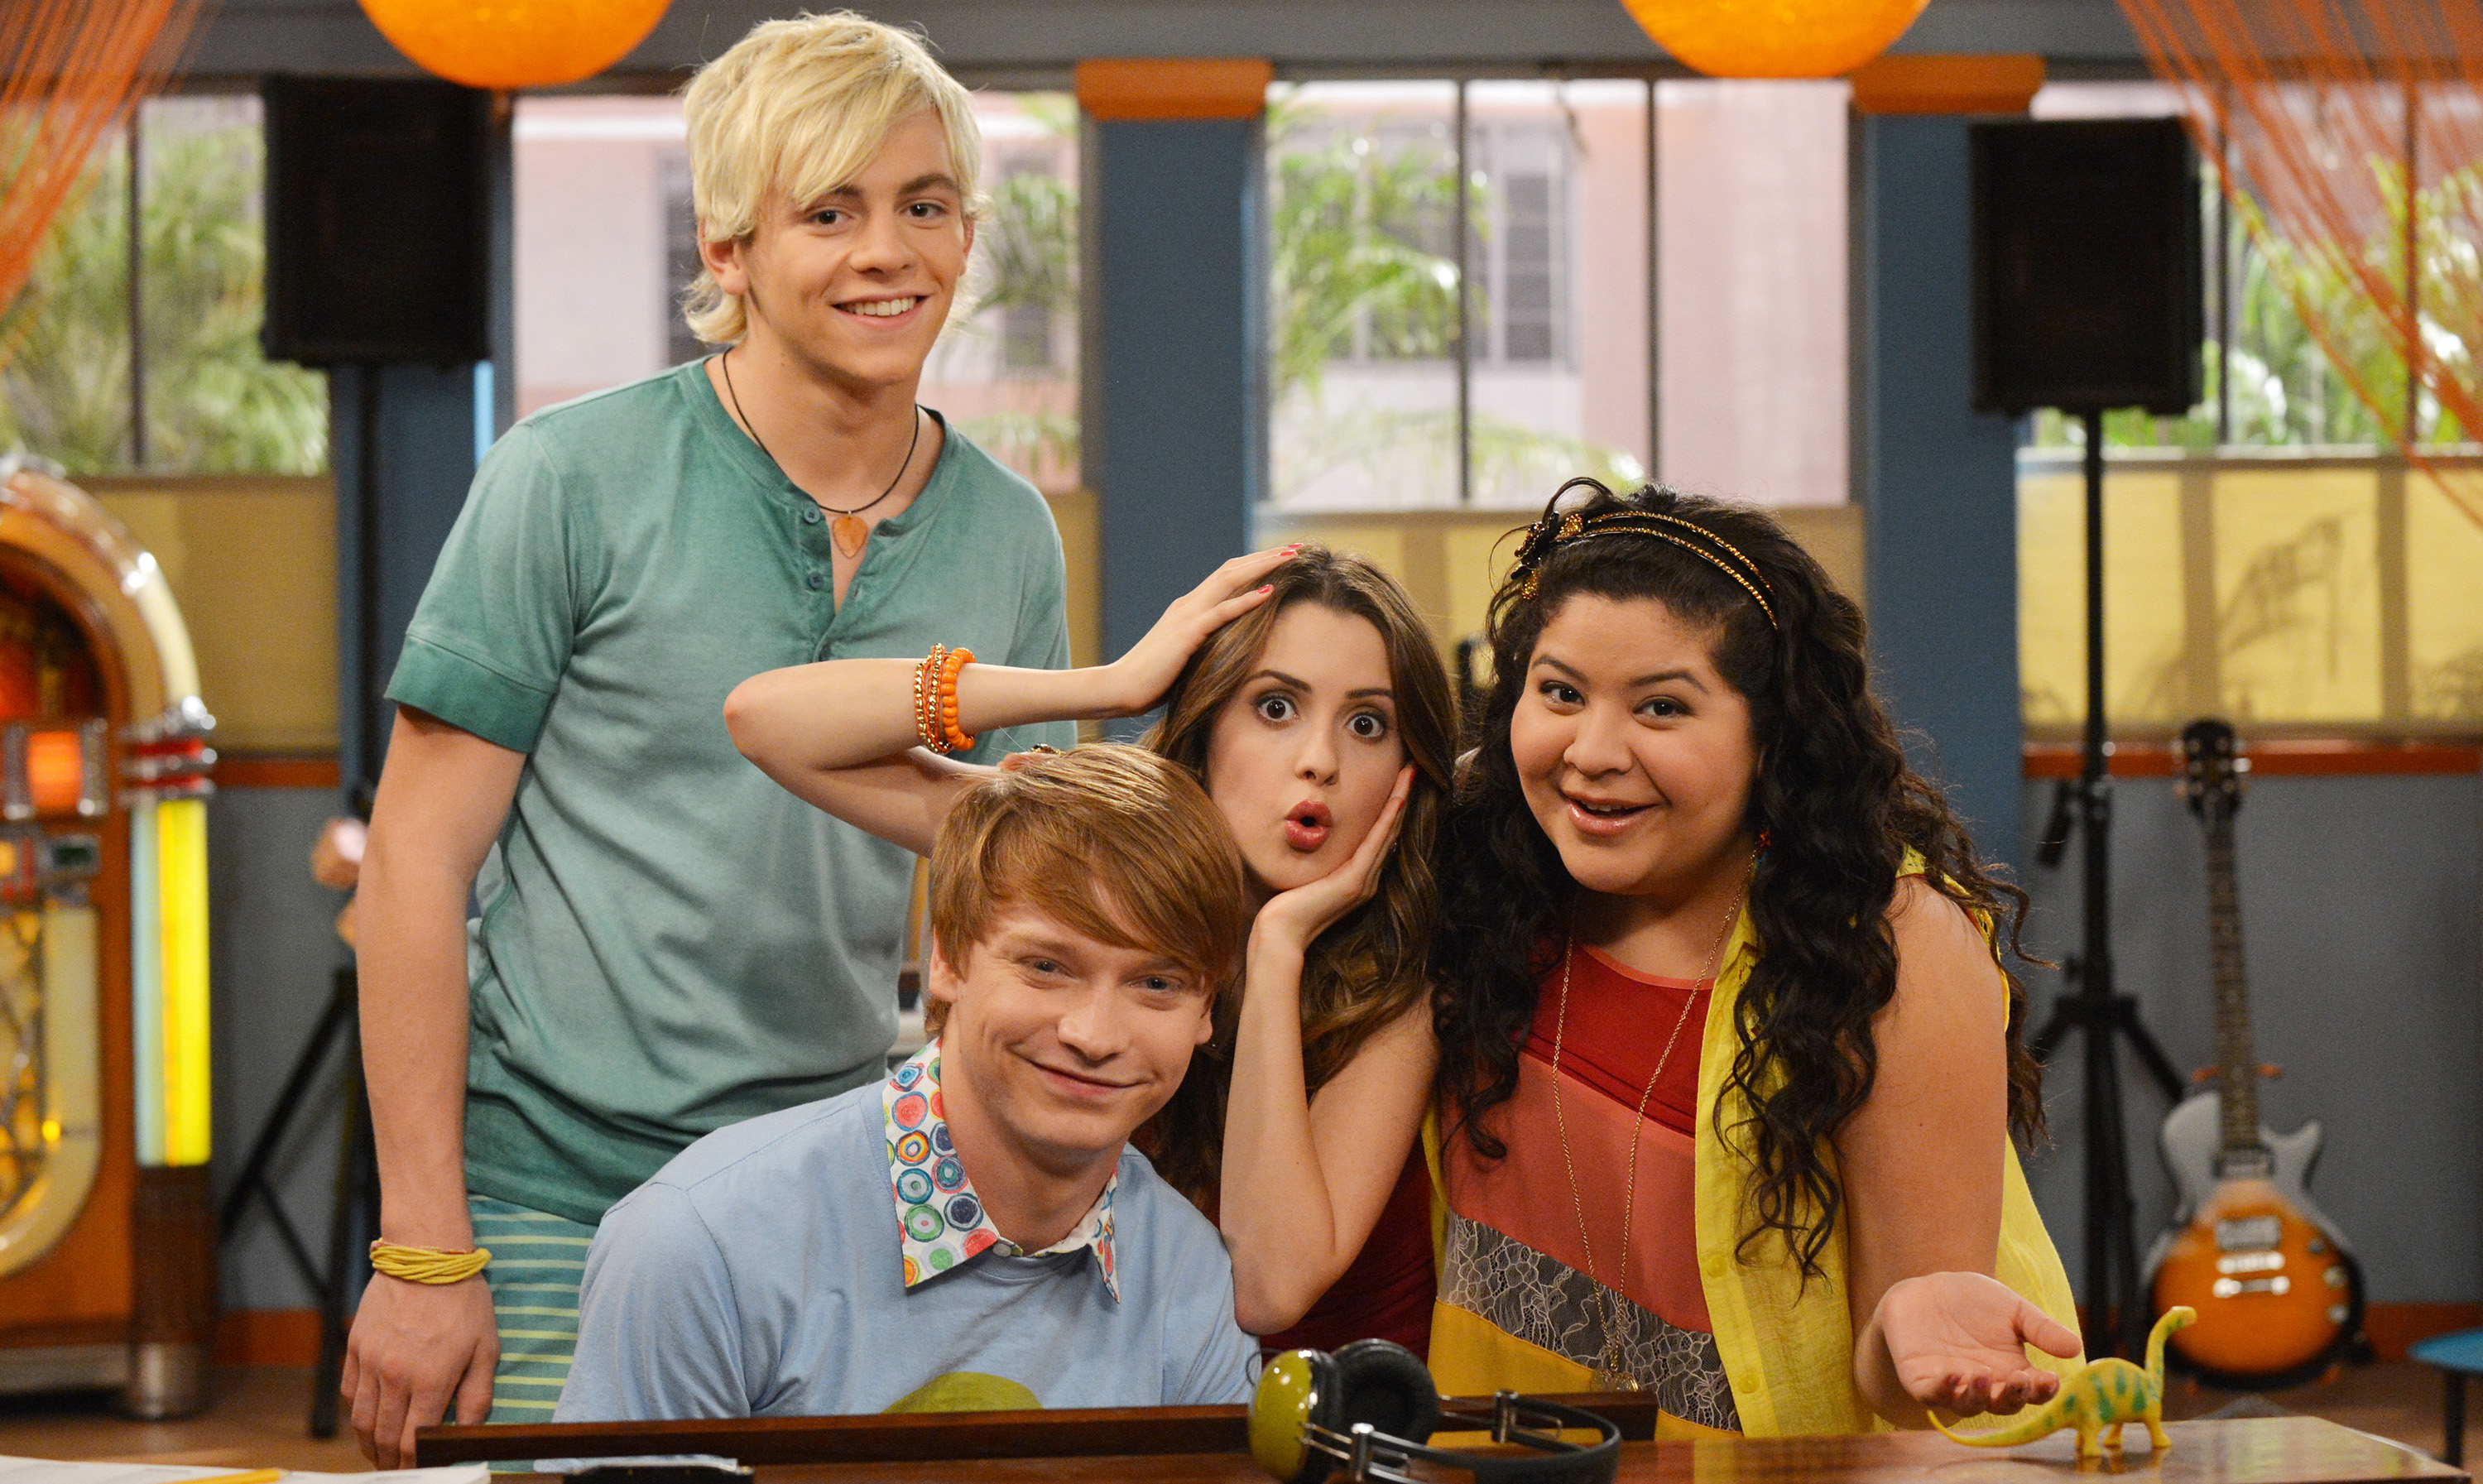 Did austin and ally start dating